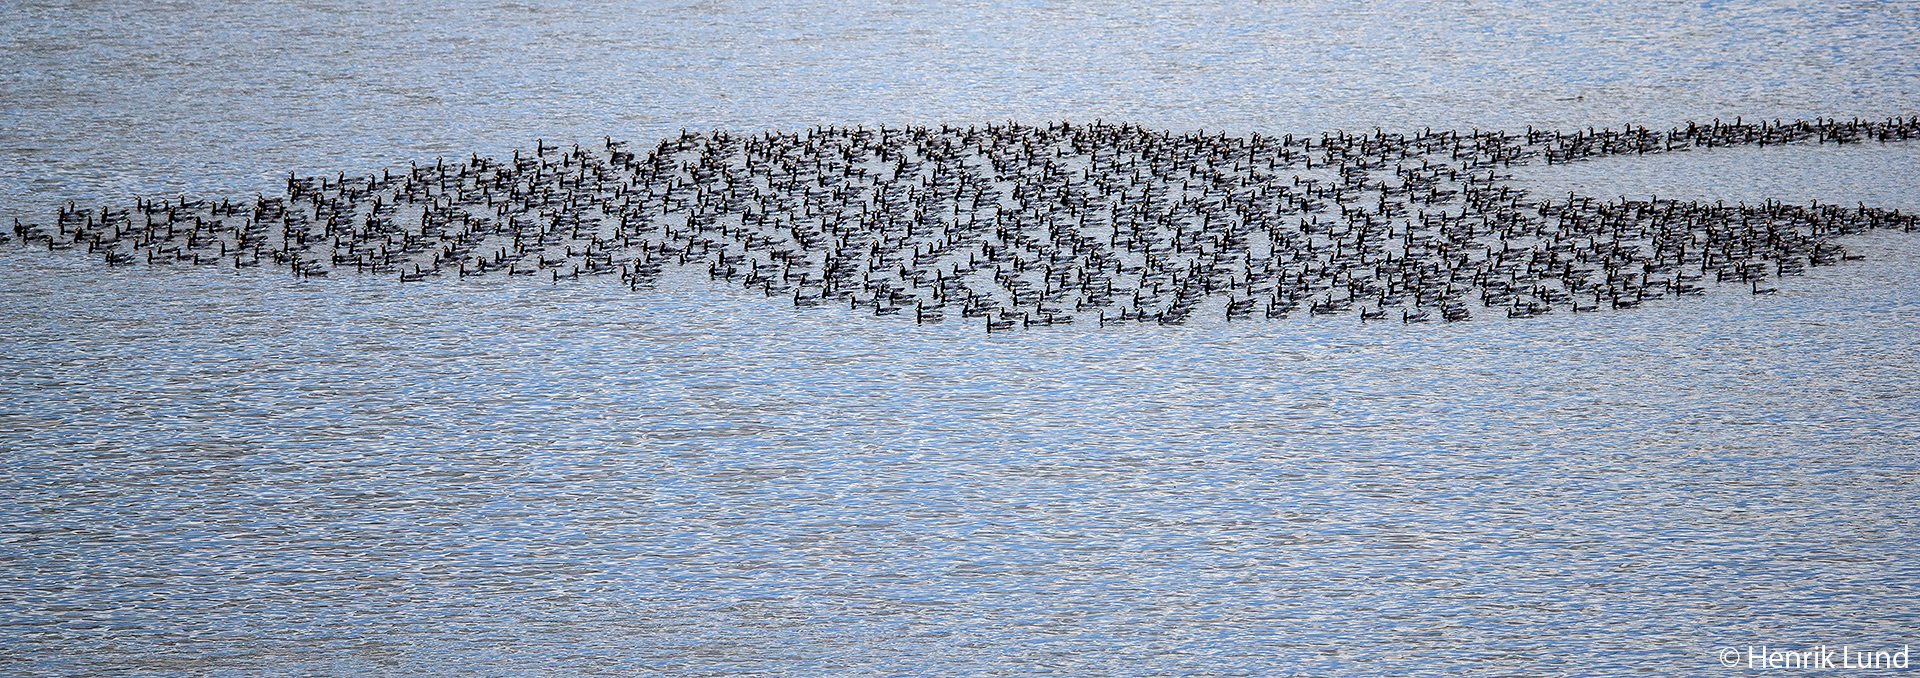 Some thousands of barnacle geese resting at the lake. Lappträsk, Finland. October 2017.